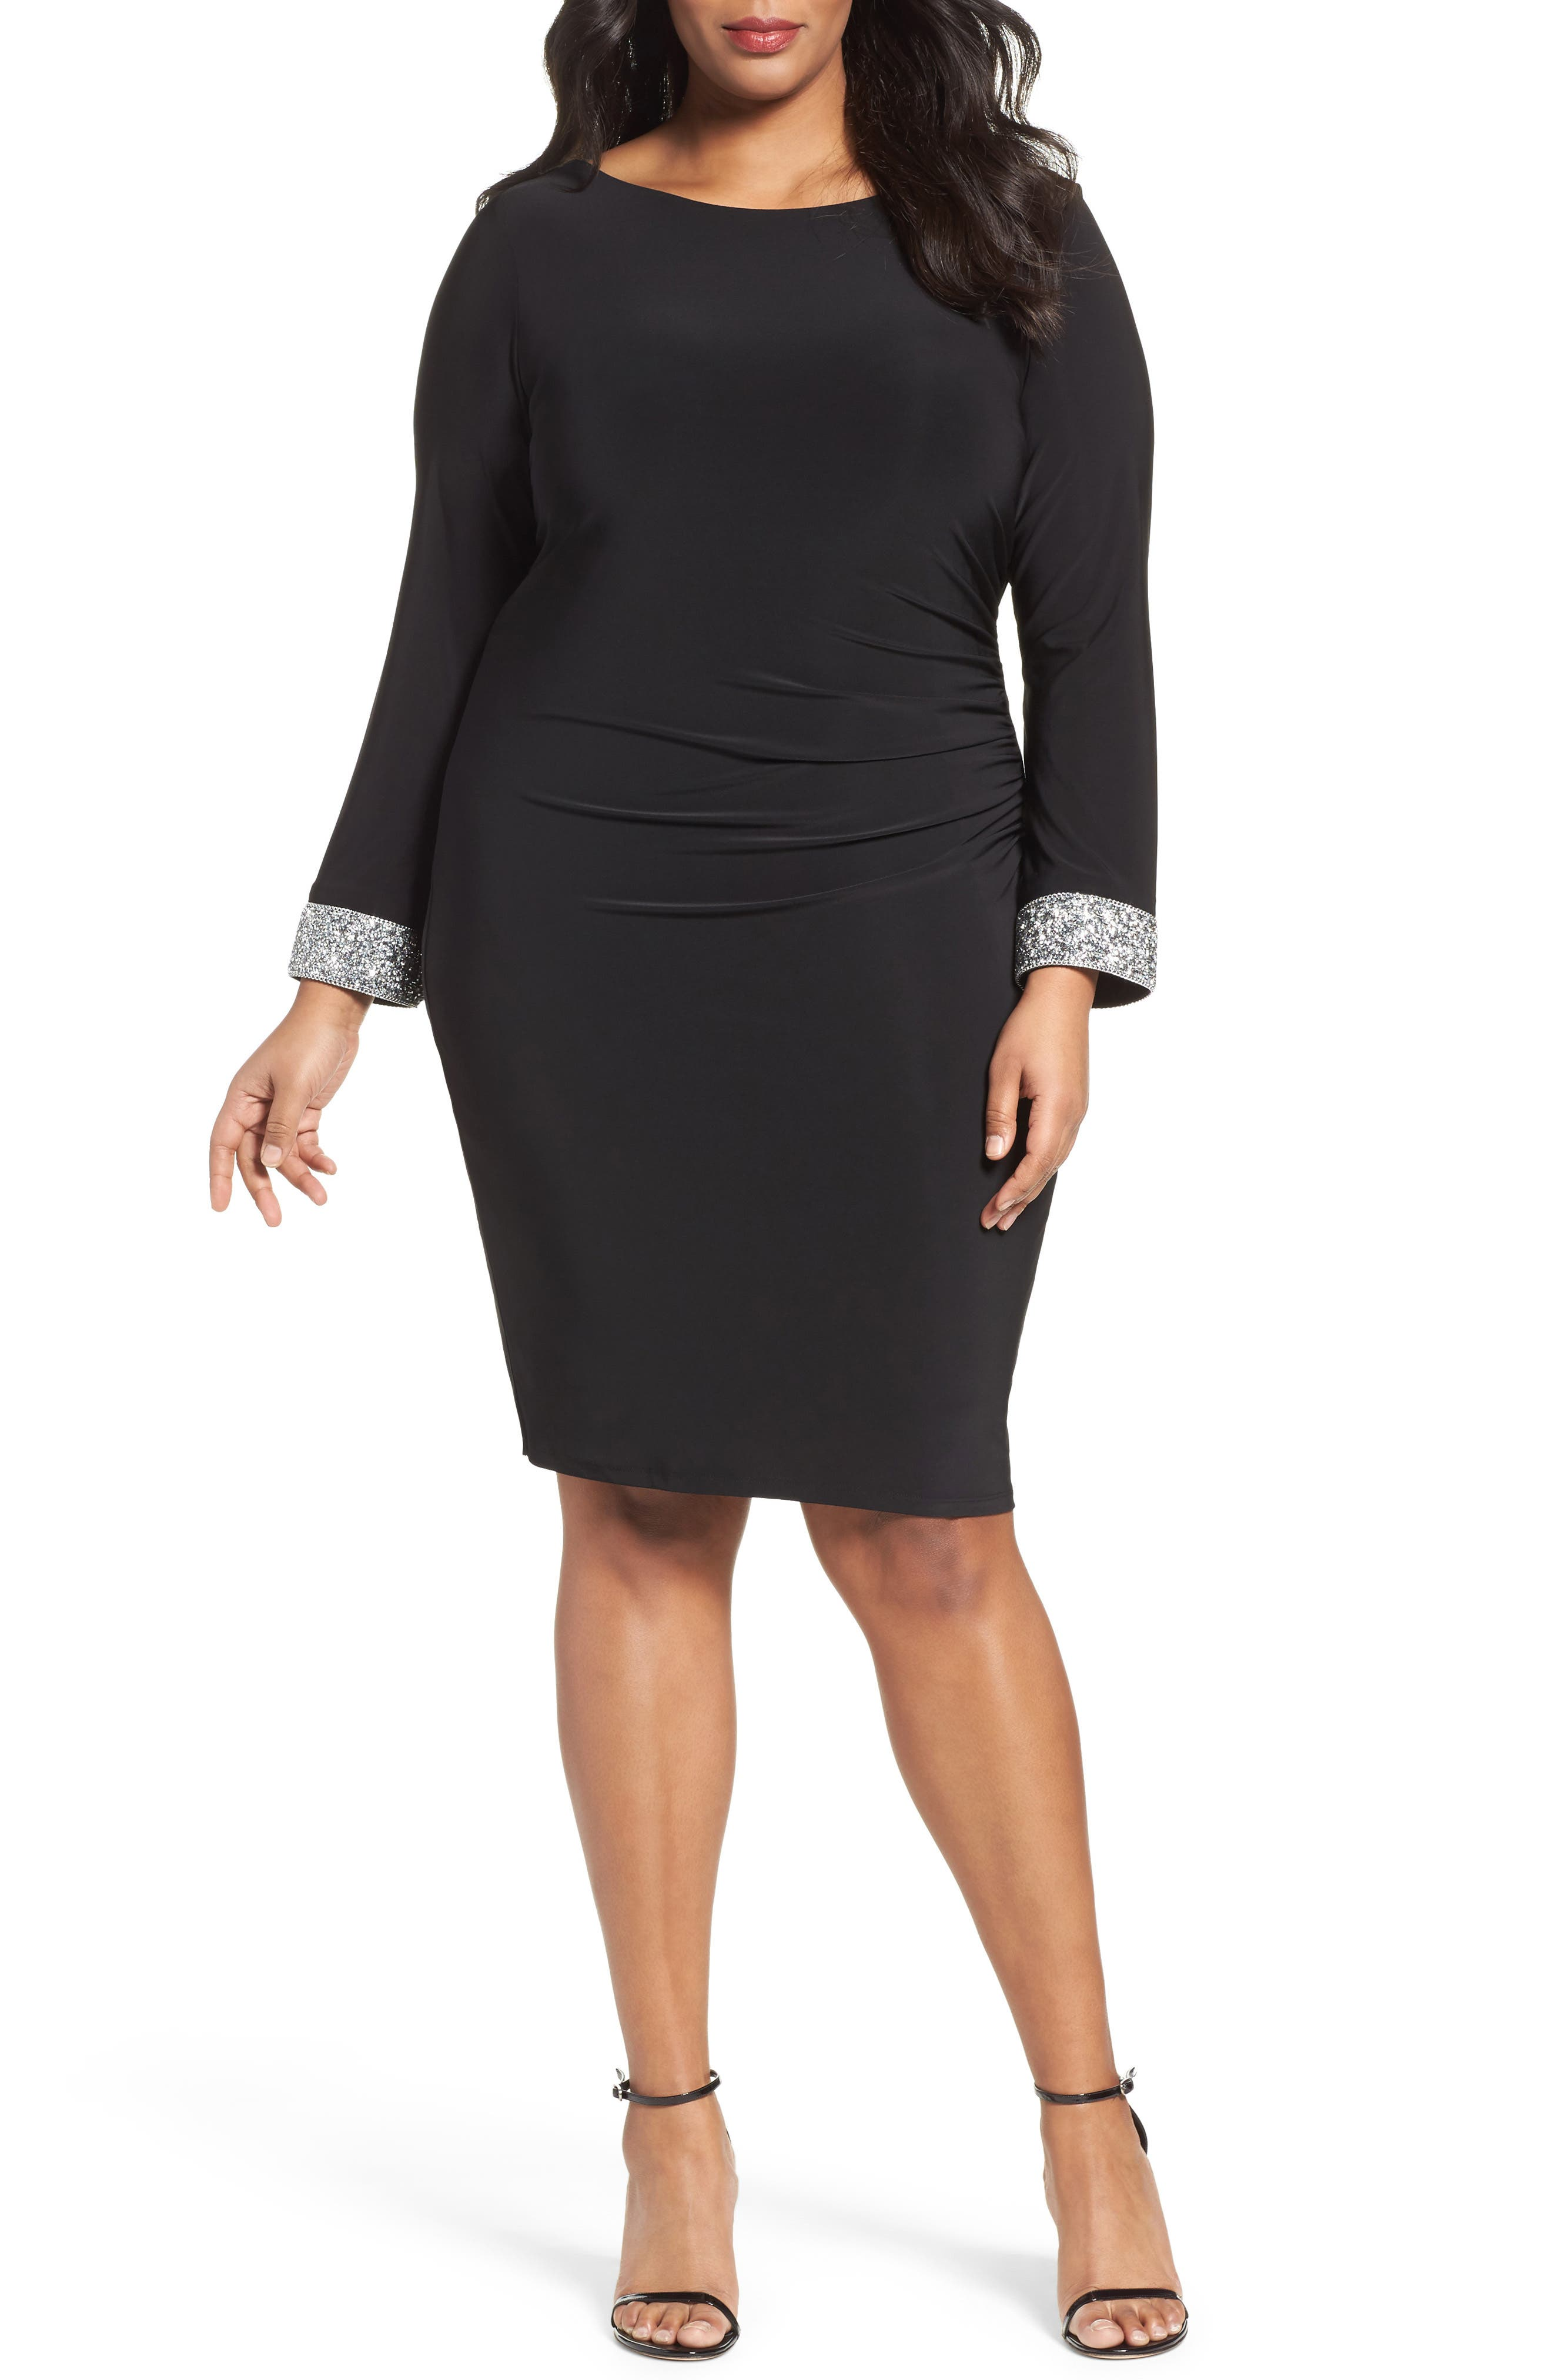 Main Image - Marina Open Back Sheath Dress (Plus Size)